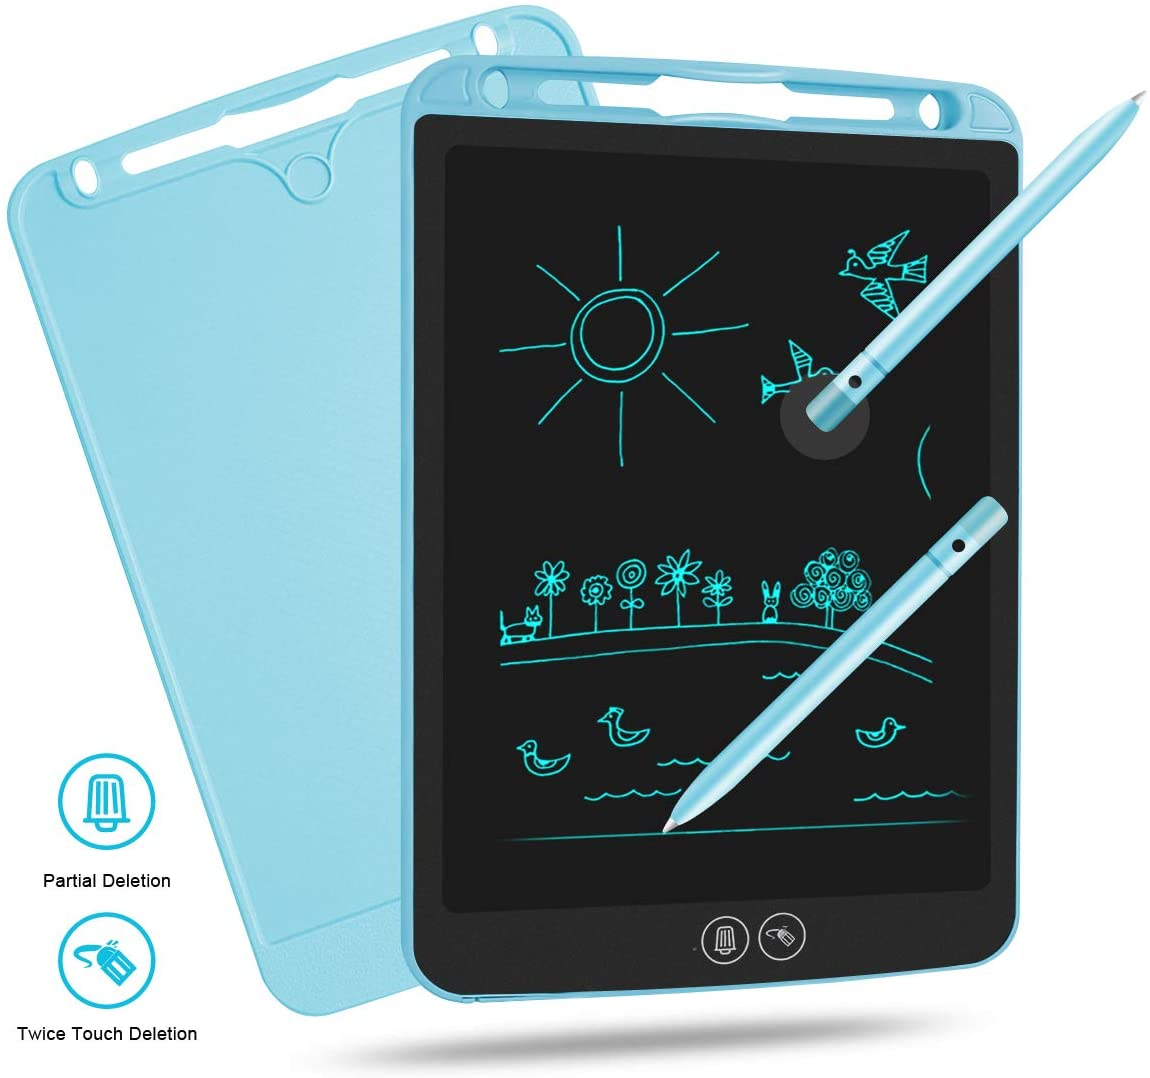 LCD Writing Tablet 10 Inch, Electronic Drawing Tablet Writing Board Doodle Board Portable Tablet for Kids Girls Boys Adults at Home Travel School Office